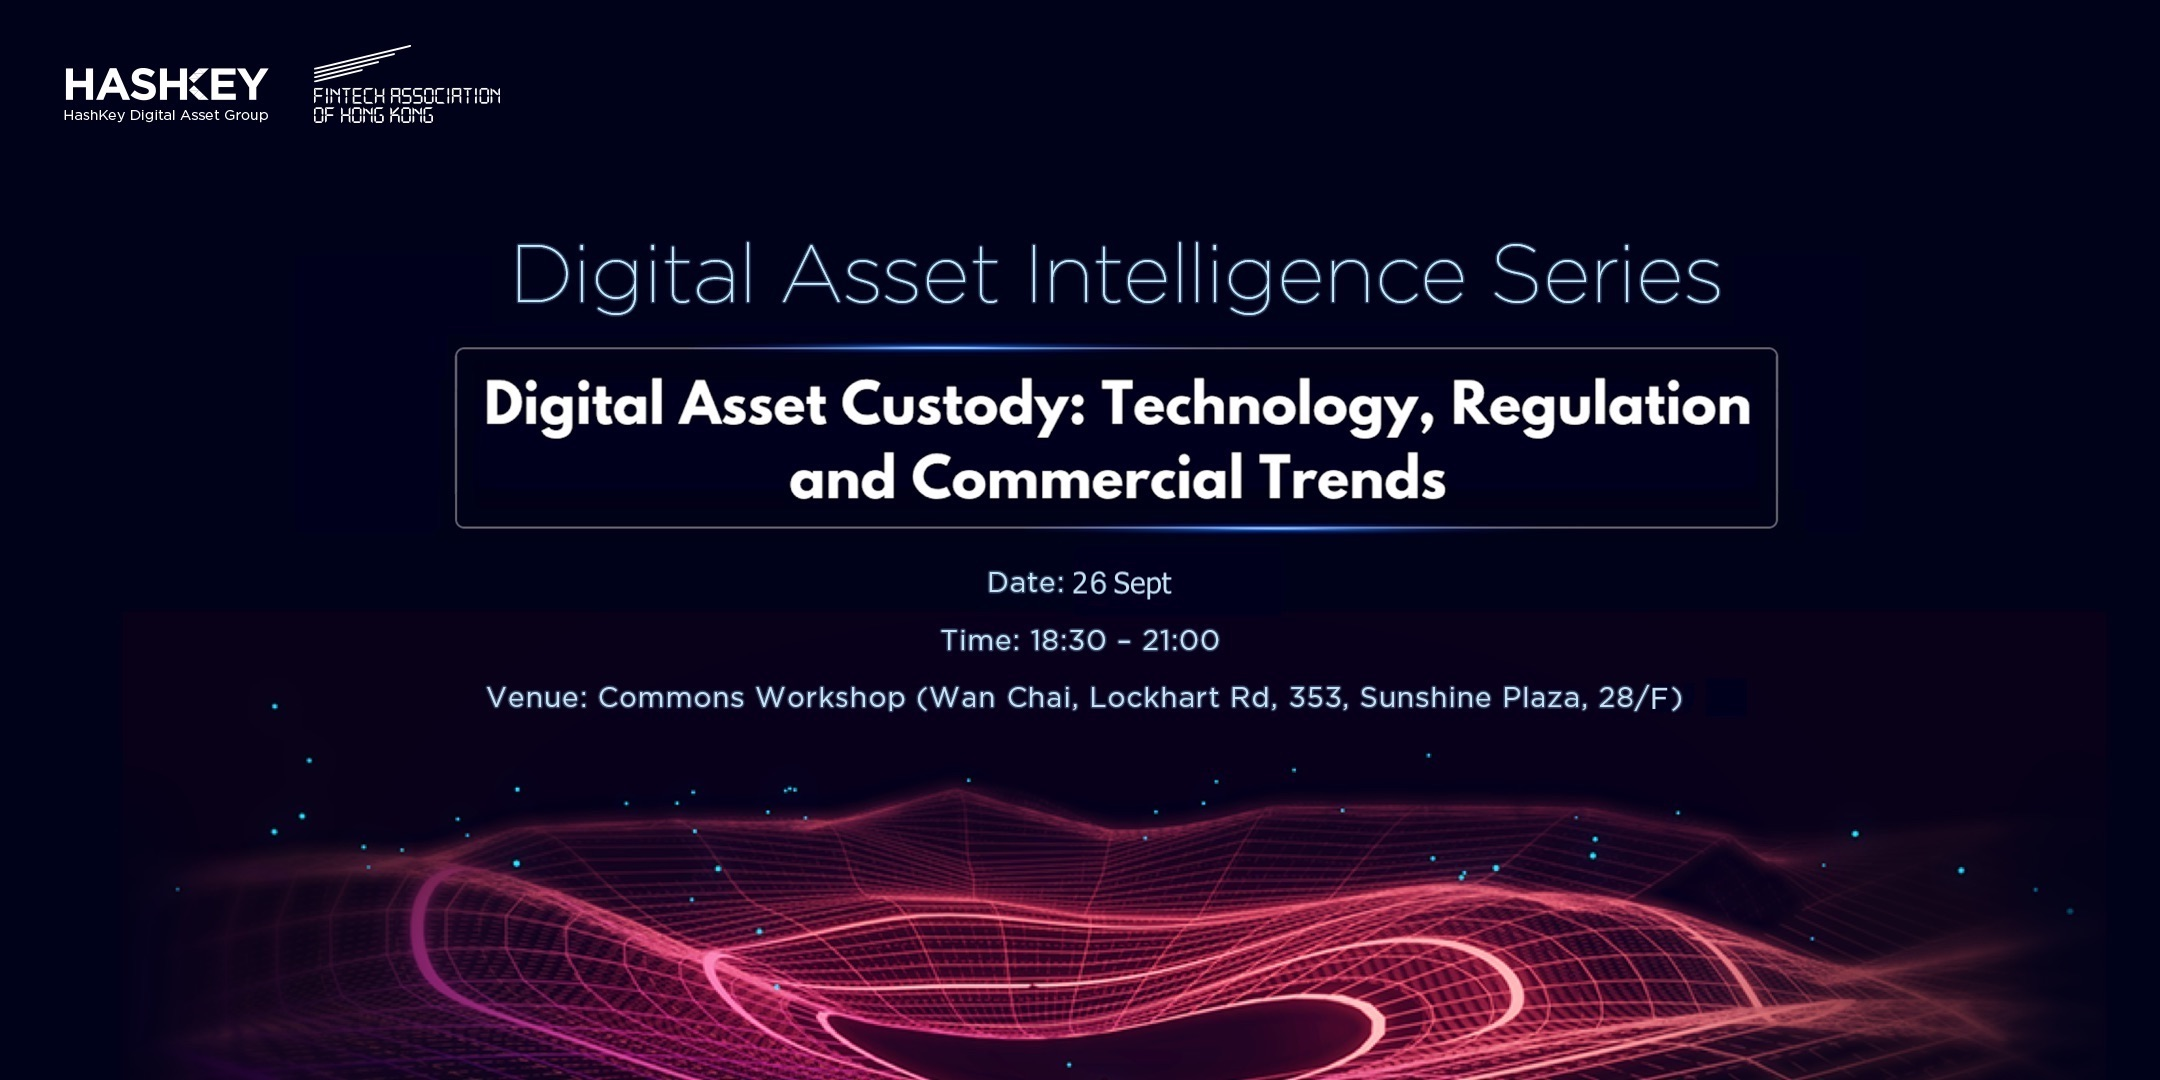 As the digital asset industry has evolved over time, technology solutions and regulations around digital asset custody solutions have continued to develop. Institutional investors, financial institutions, and regulators around the world are longing to see custody solutions that are as equally robust as those provided for traditional assets, in order to enable institutions to be fully engaged with digital assets.  In this event, we are inviting experts from the field of custody service, cybersecurity, insurance, and professional services to share insights on the current state and the commercial trends of this foundational part of the cryptocurrency and digital asset industry.    18:30 – 19:00 Registration  19:00 – 19:20 Research Keynote 1  19:20 - 19:40 Research Keynote 2  19:40 – 19:45 Break  19:45 – 20:15 Panel Discussion  20:15 – 21:00 Networking